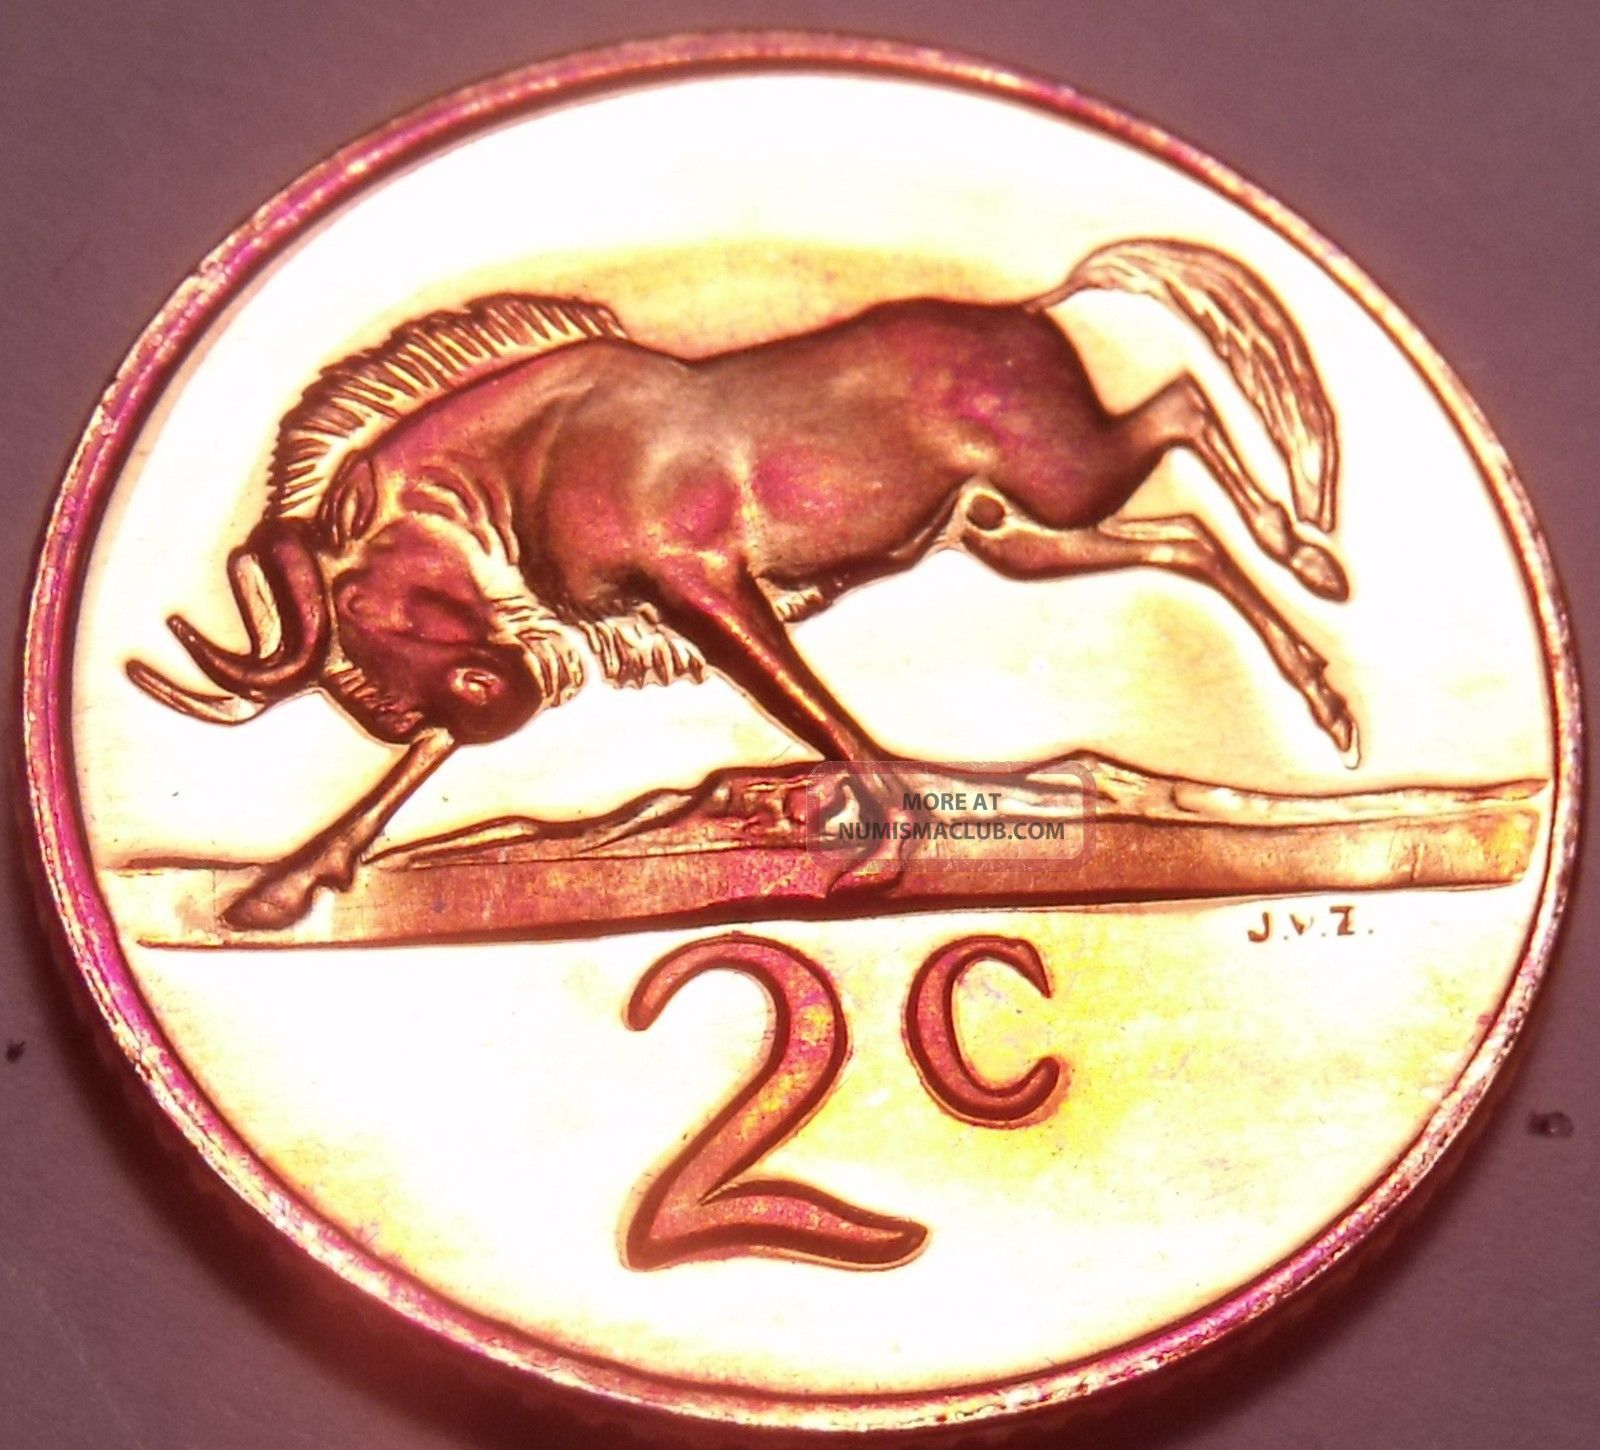 Rare Proof South Africa 1980 2 Cents Only 5,  000 Ever Minted Black Wildebeest F/s Coins: World photo